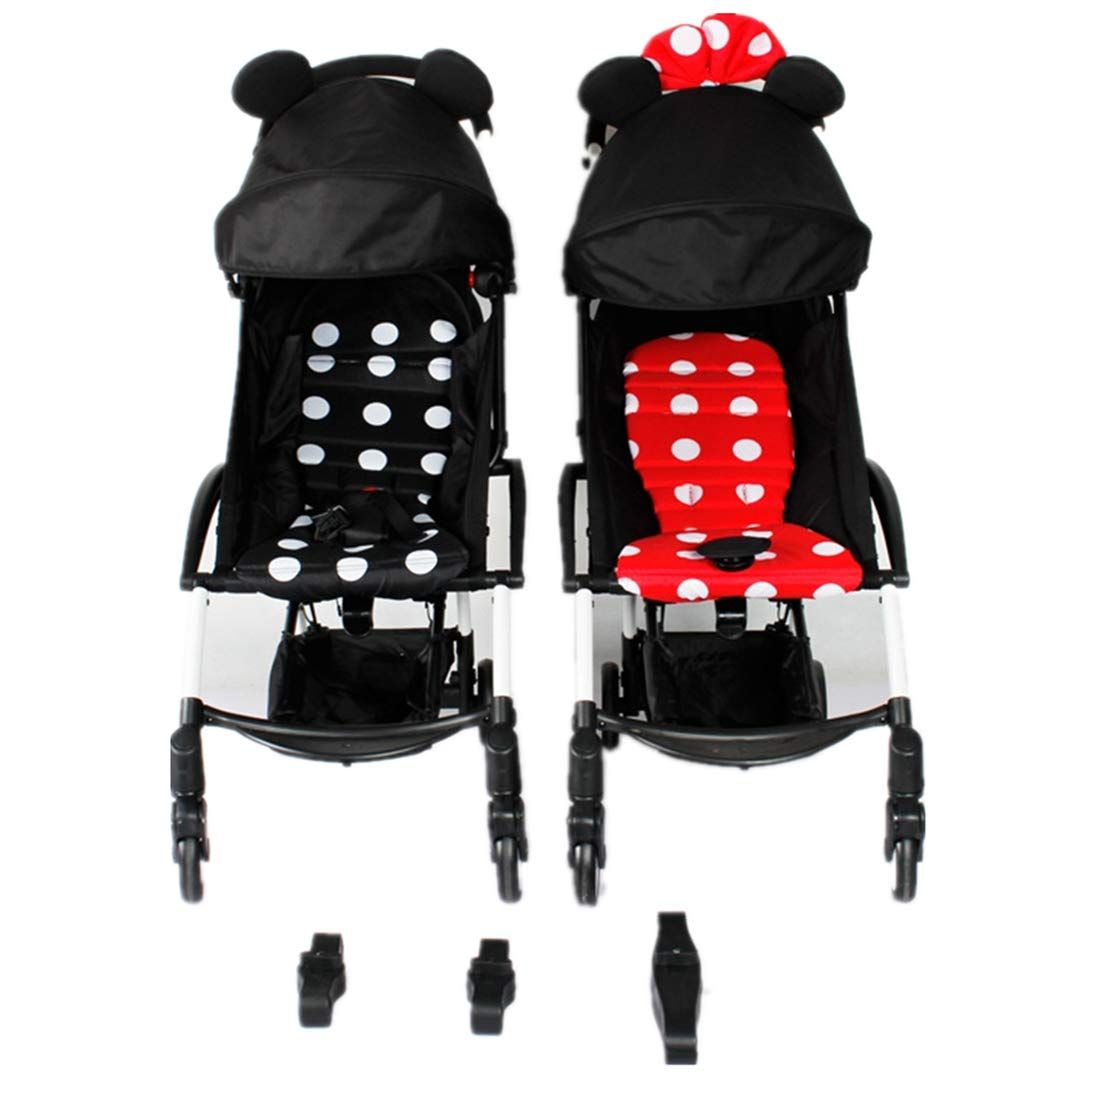 Baby Stroller Connectors for YOYO Strollers